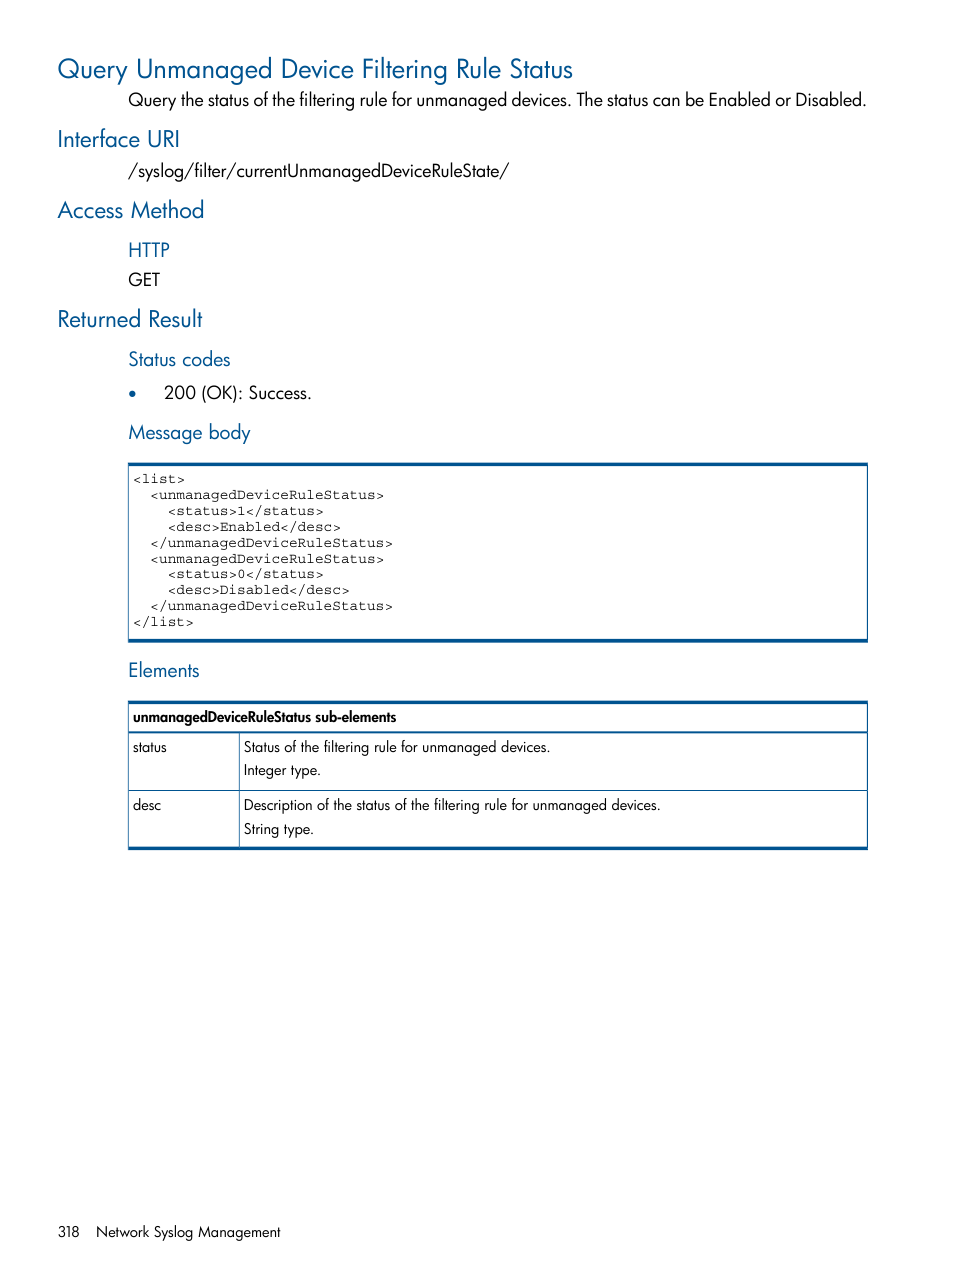 Query unmanaged device filtering rule status, Interface uri